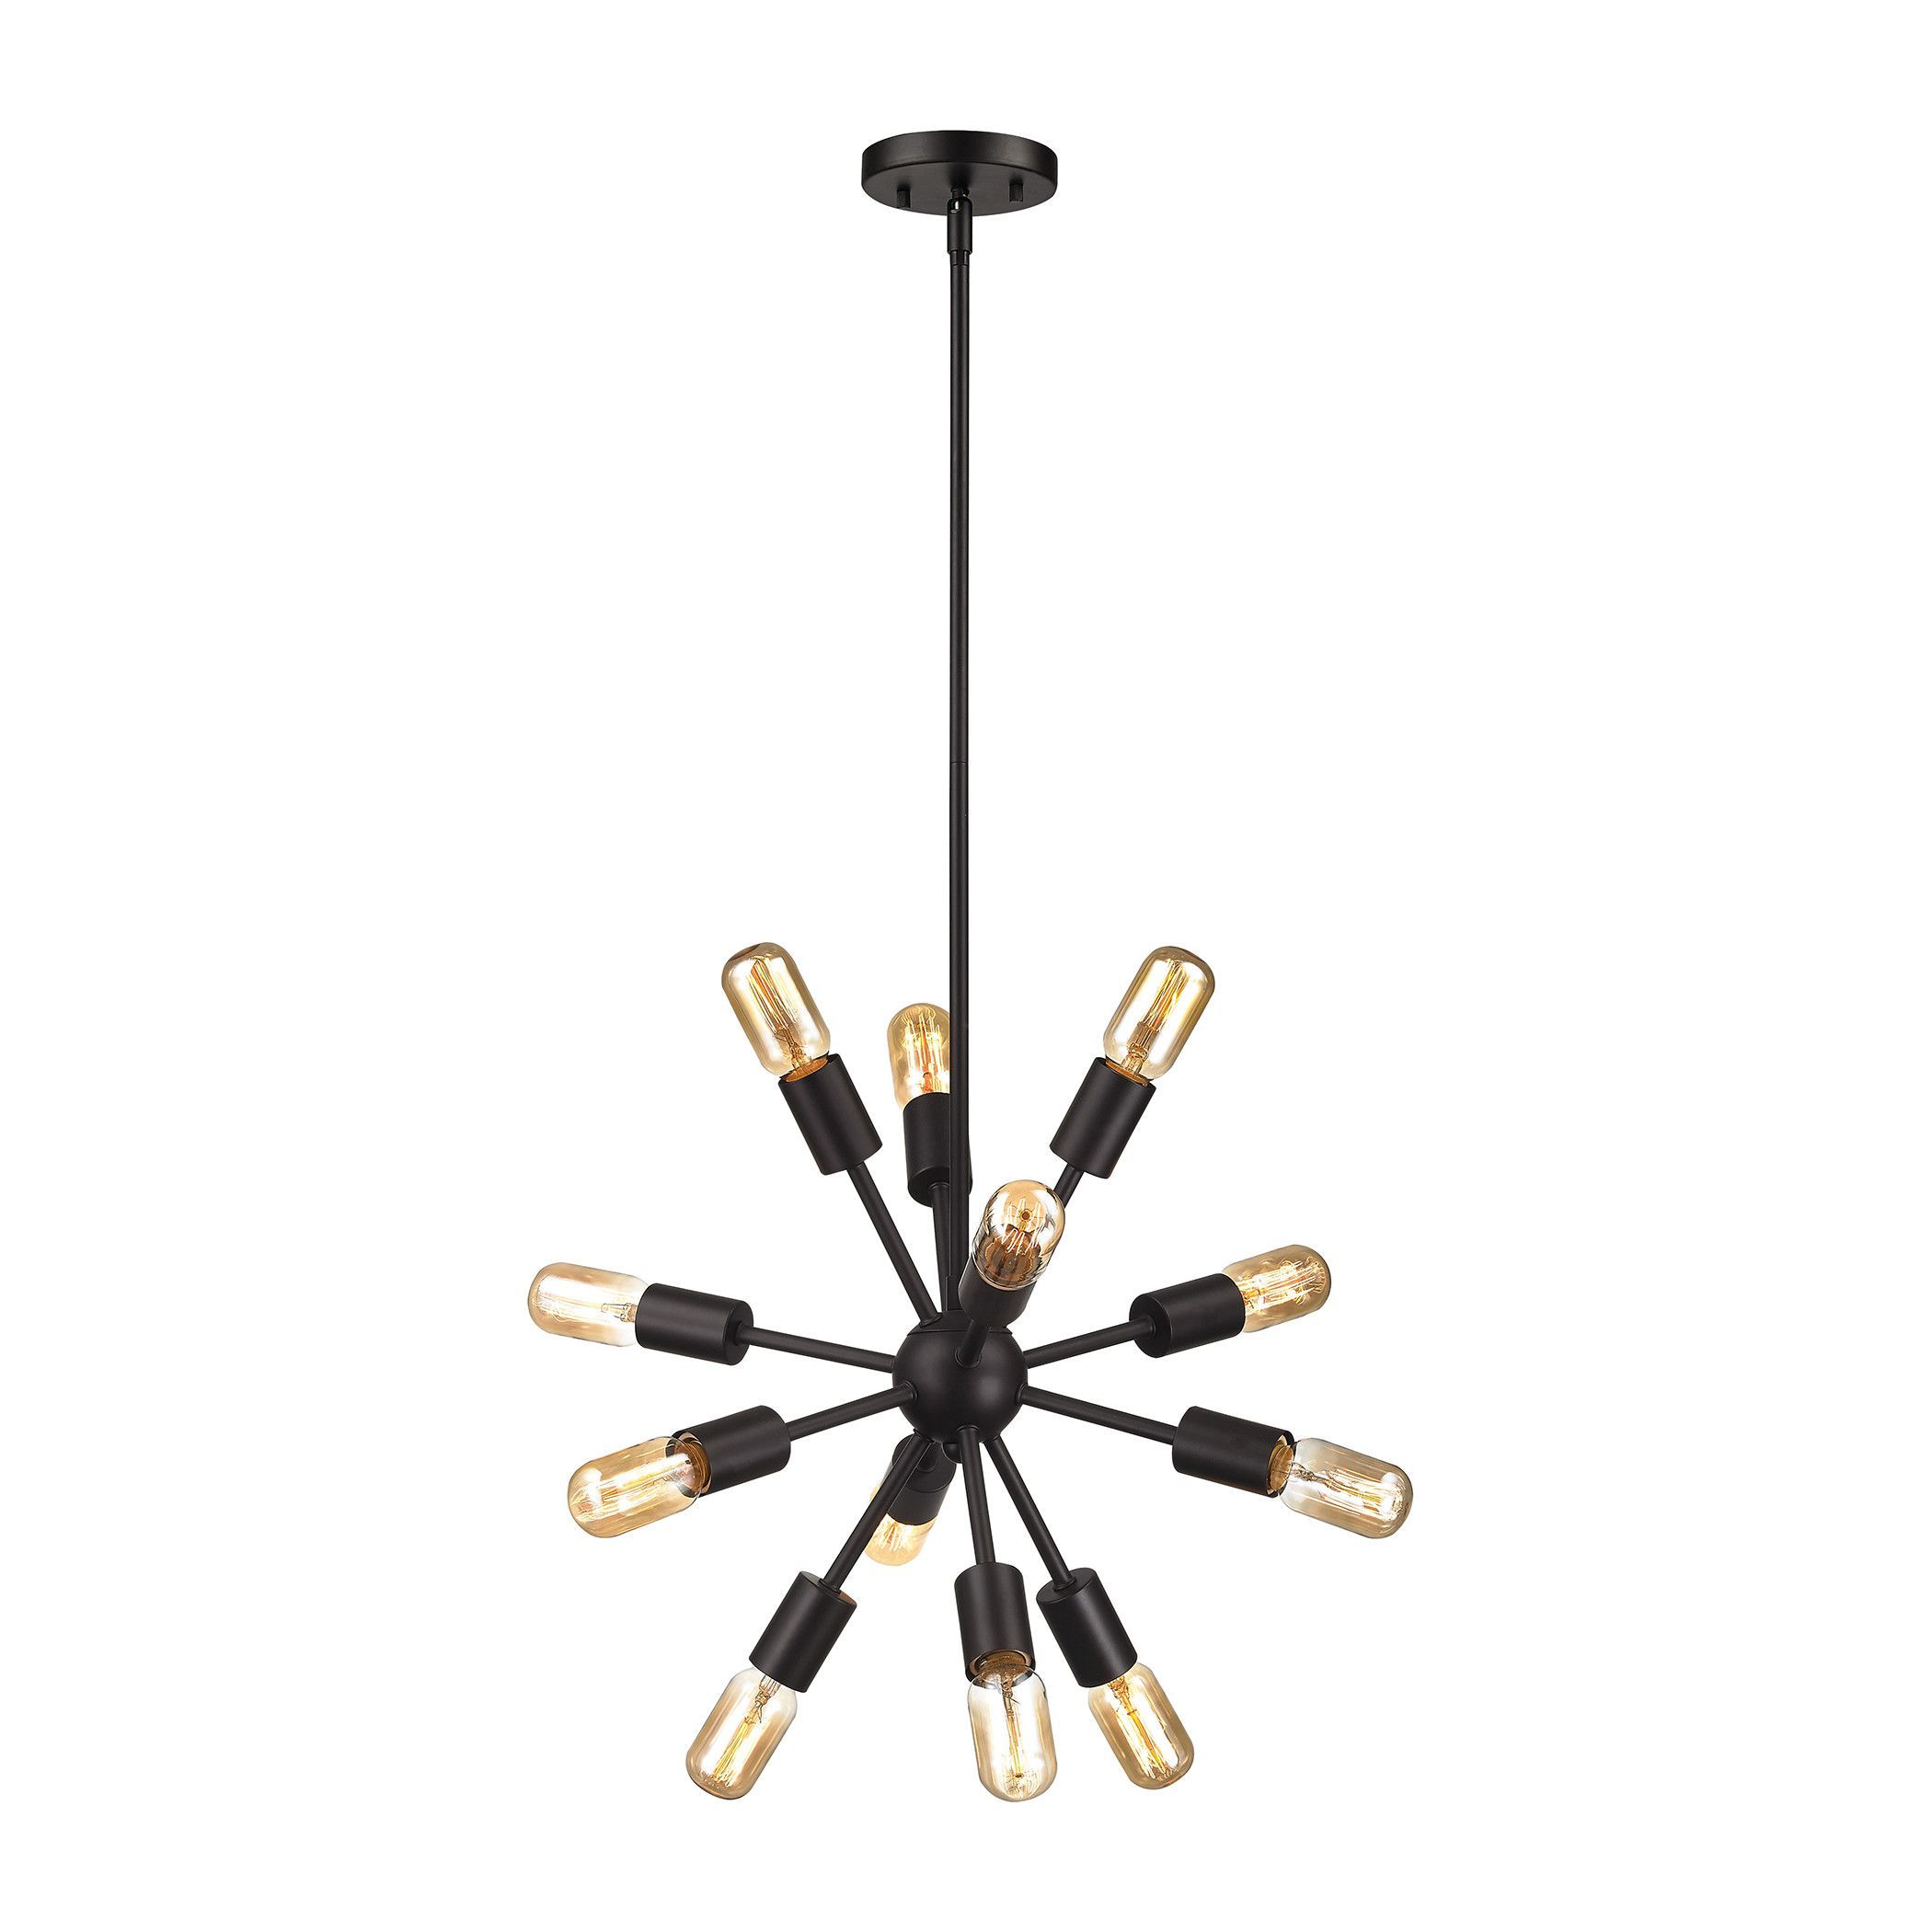 Customer image zoomed farmhouse light pinterest coffee shop a sculptural statement with futuristic influences the kendall mini chandelier exudes mod molecular style add exposed filment bulbs for industrial flair arubaitofo Images